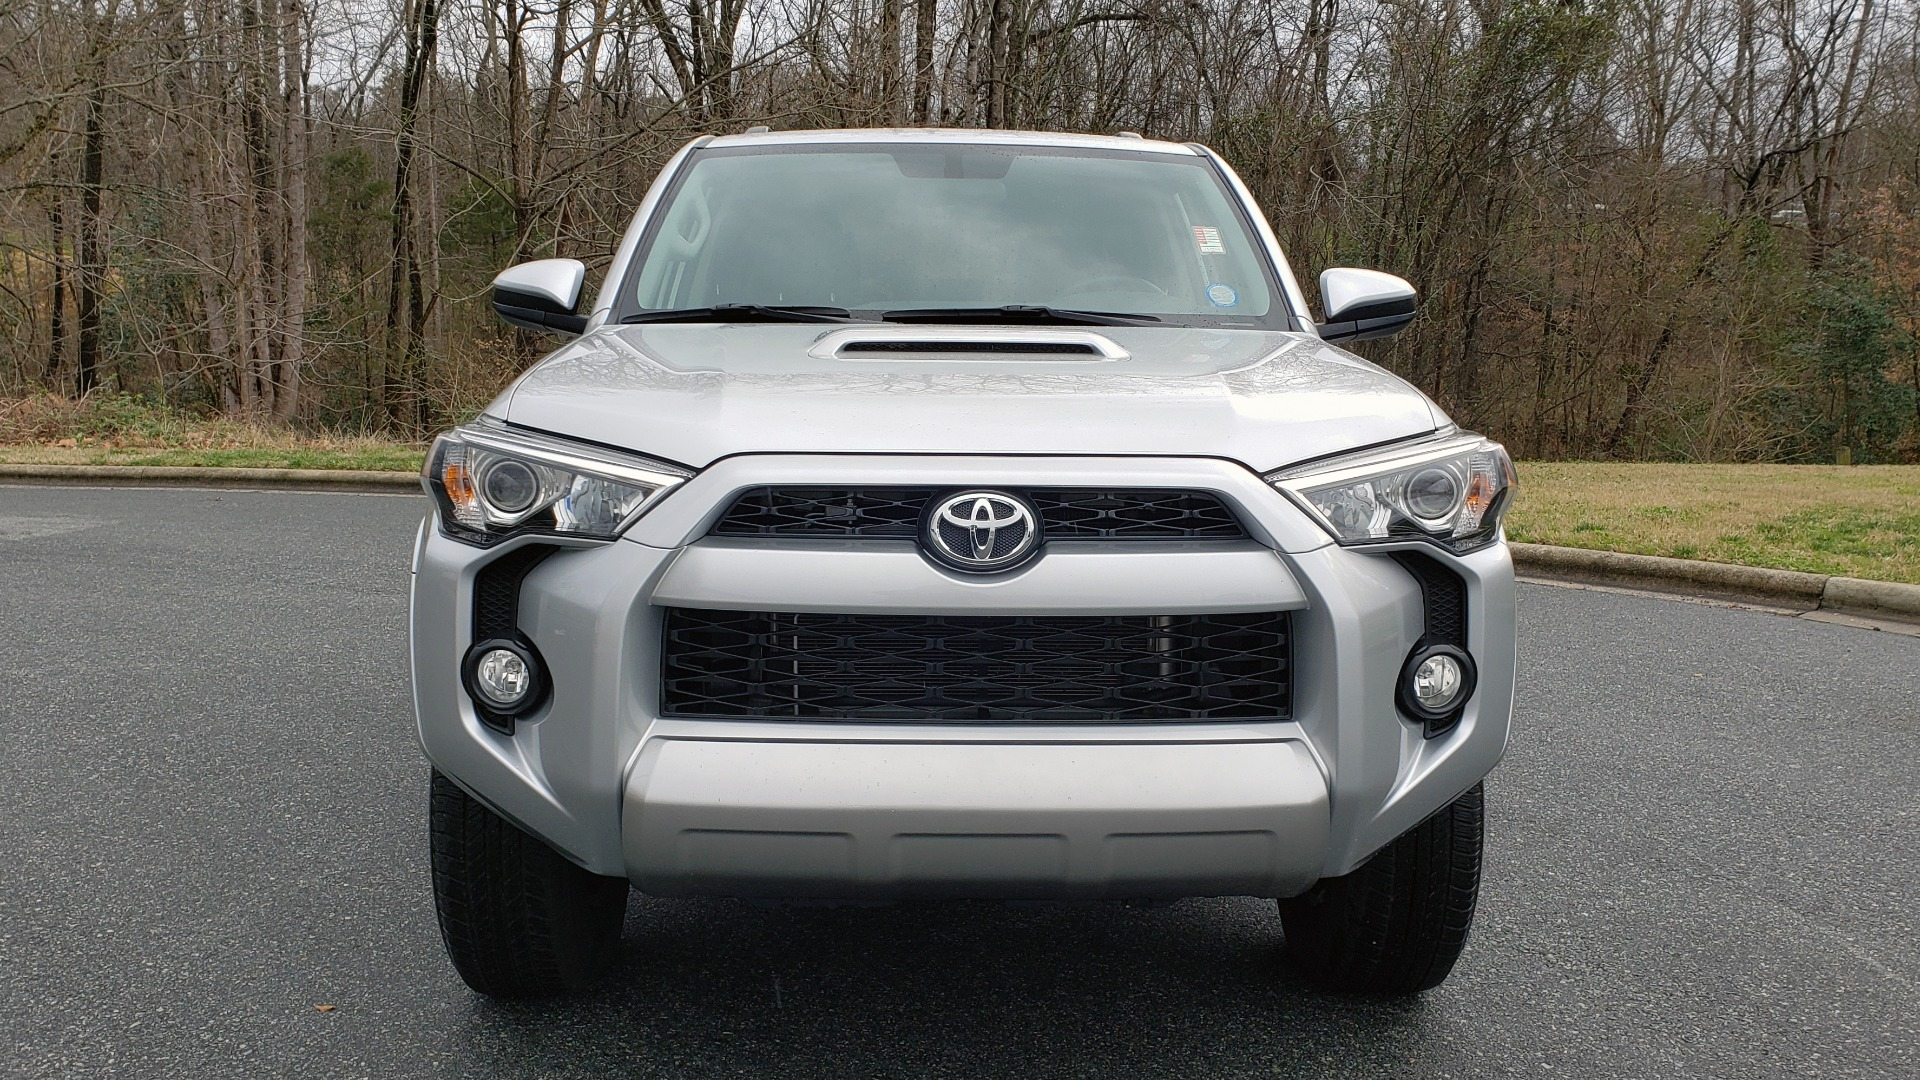 Used 2018 Toyota 4RUNNER TRD OFF-ROAD 4X4 / V6 / AUTO / LEATHER / LOW MILES! for sale Sold at Formula Imports in Charlotte NC 28227 25